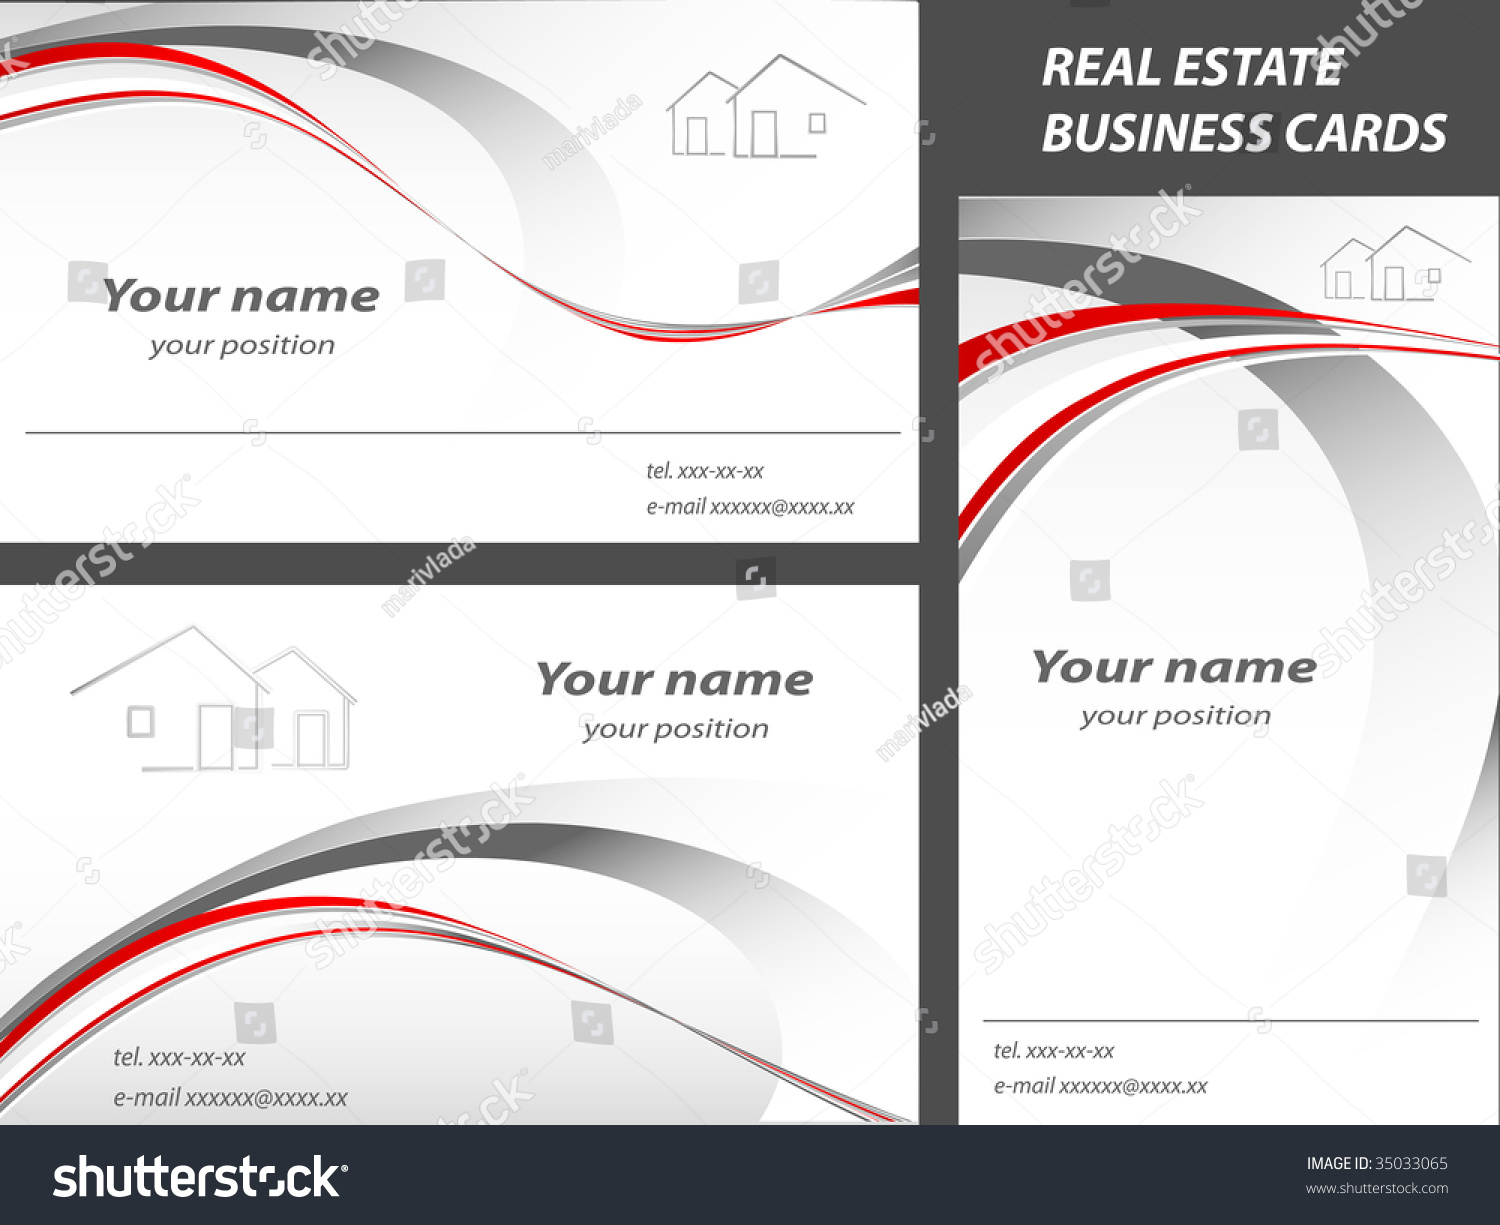 Vector business cards real estate construction stock vector vector business cards for real estate or construction company magicingreecefo Image collections